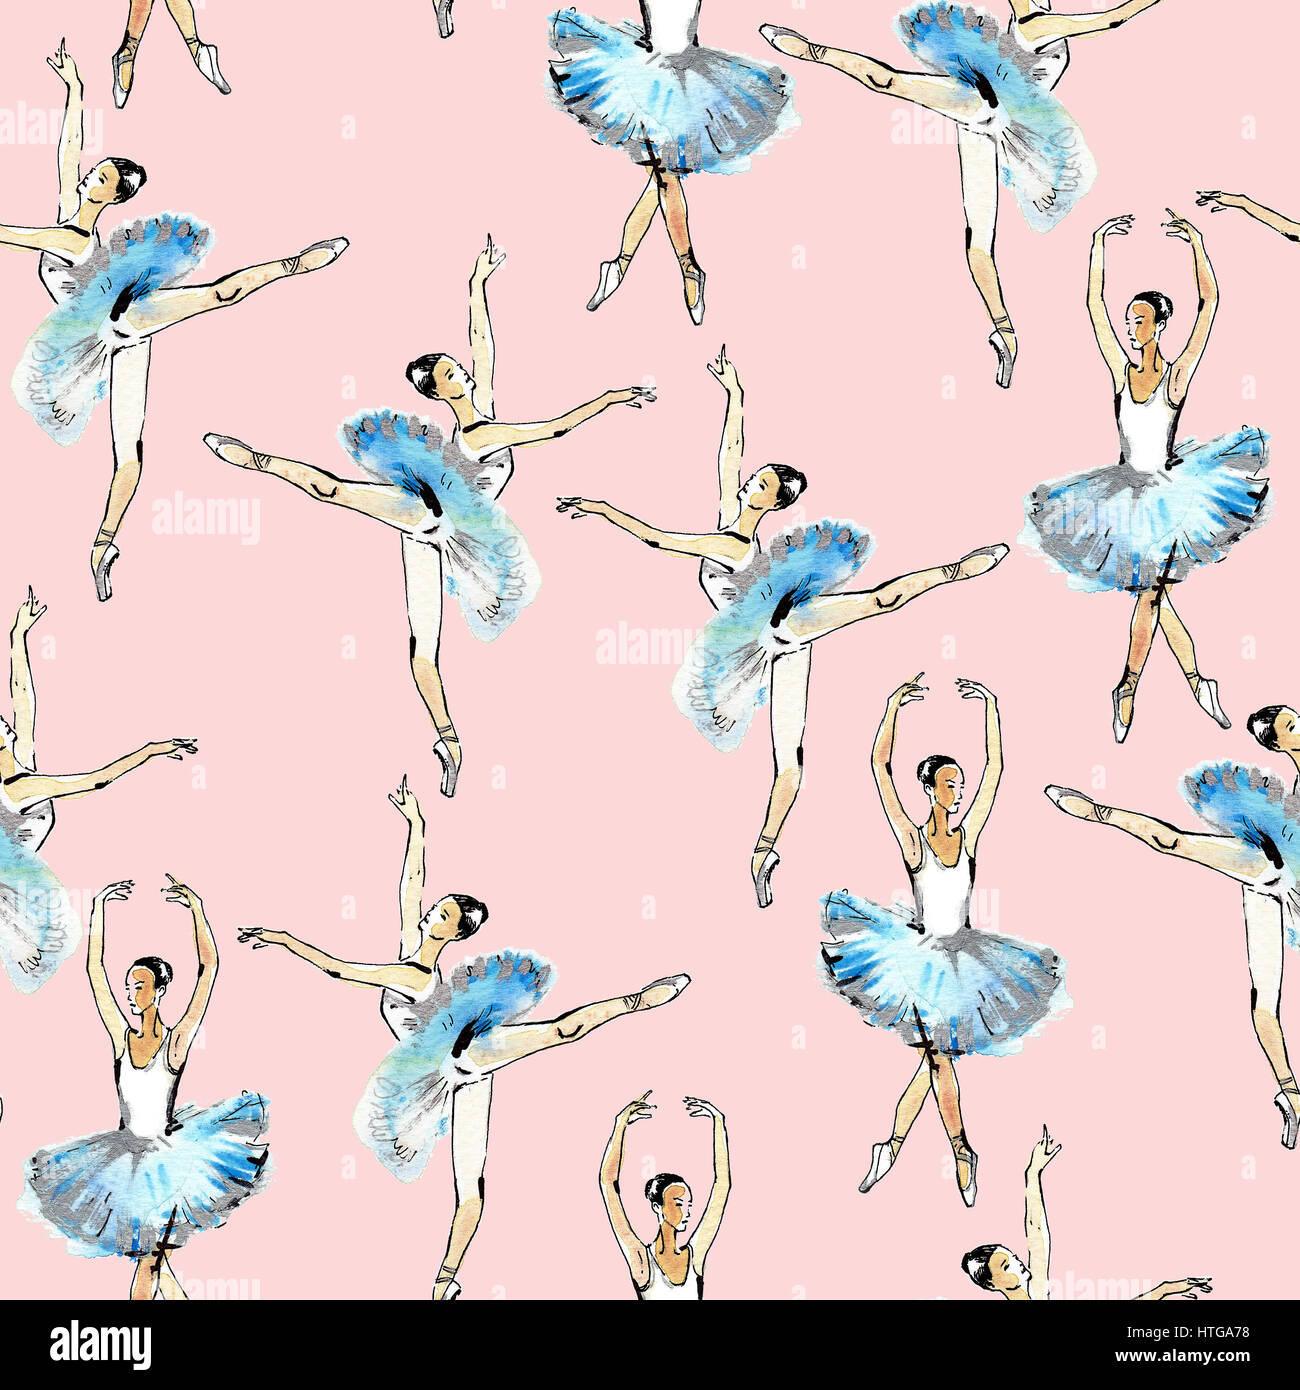 Seamless pattern of ballet dancers royalty free stock photography - Seamless Pattern Of Ballet Dancers Black And Silver Drawing Watercolor Painting Isolated On Pink Background Tabuday Alamy Stock Photo